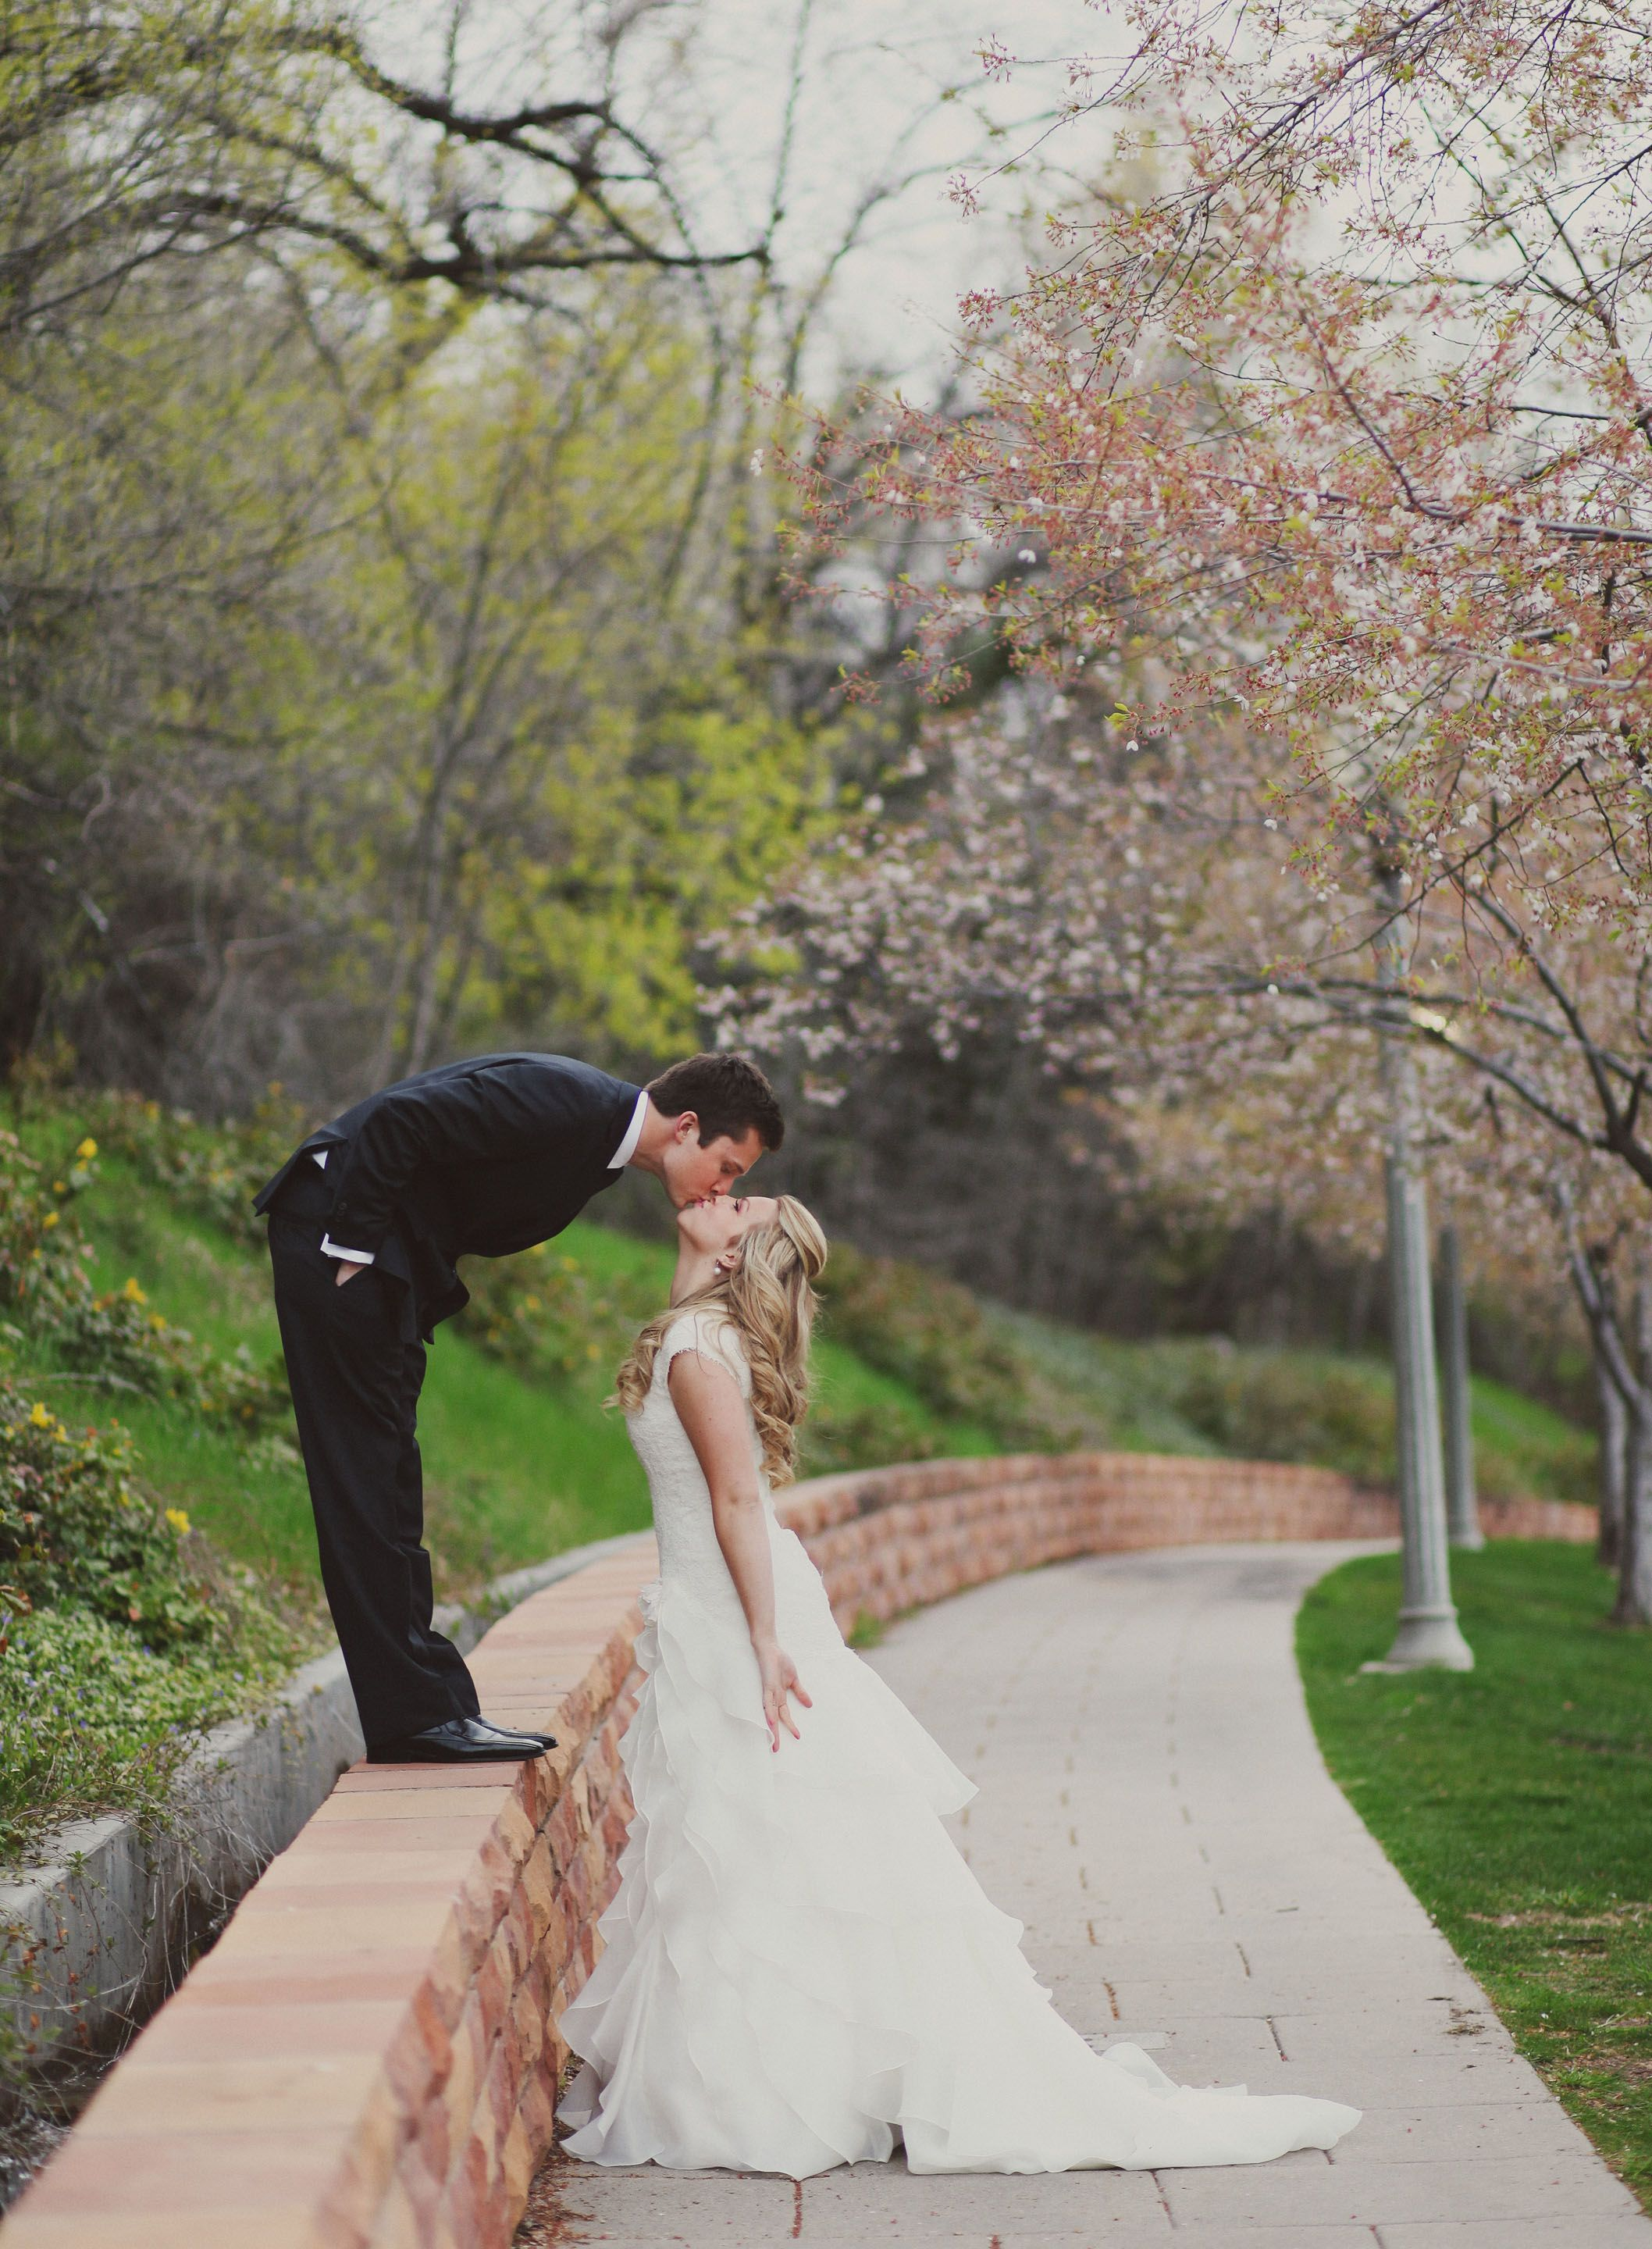 Wedding Photography Consultant: So Cute For The Shorter Husband!